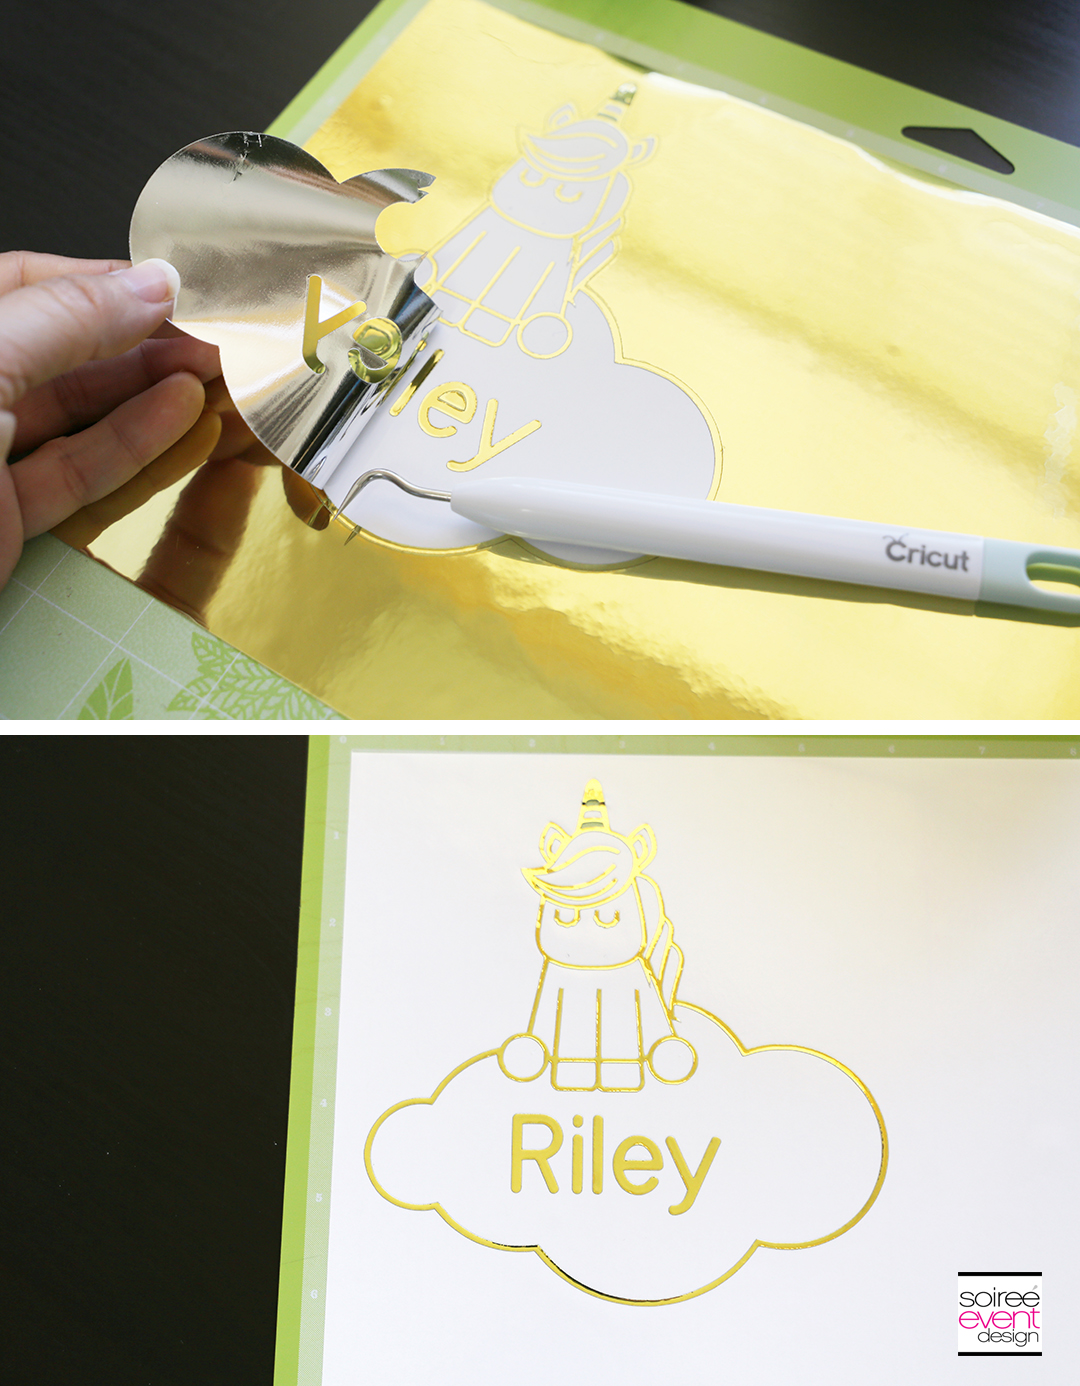 Make Personalized Party Plates with Cricut - Step 8